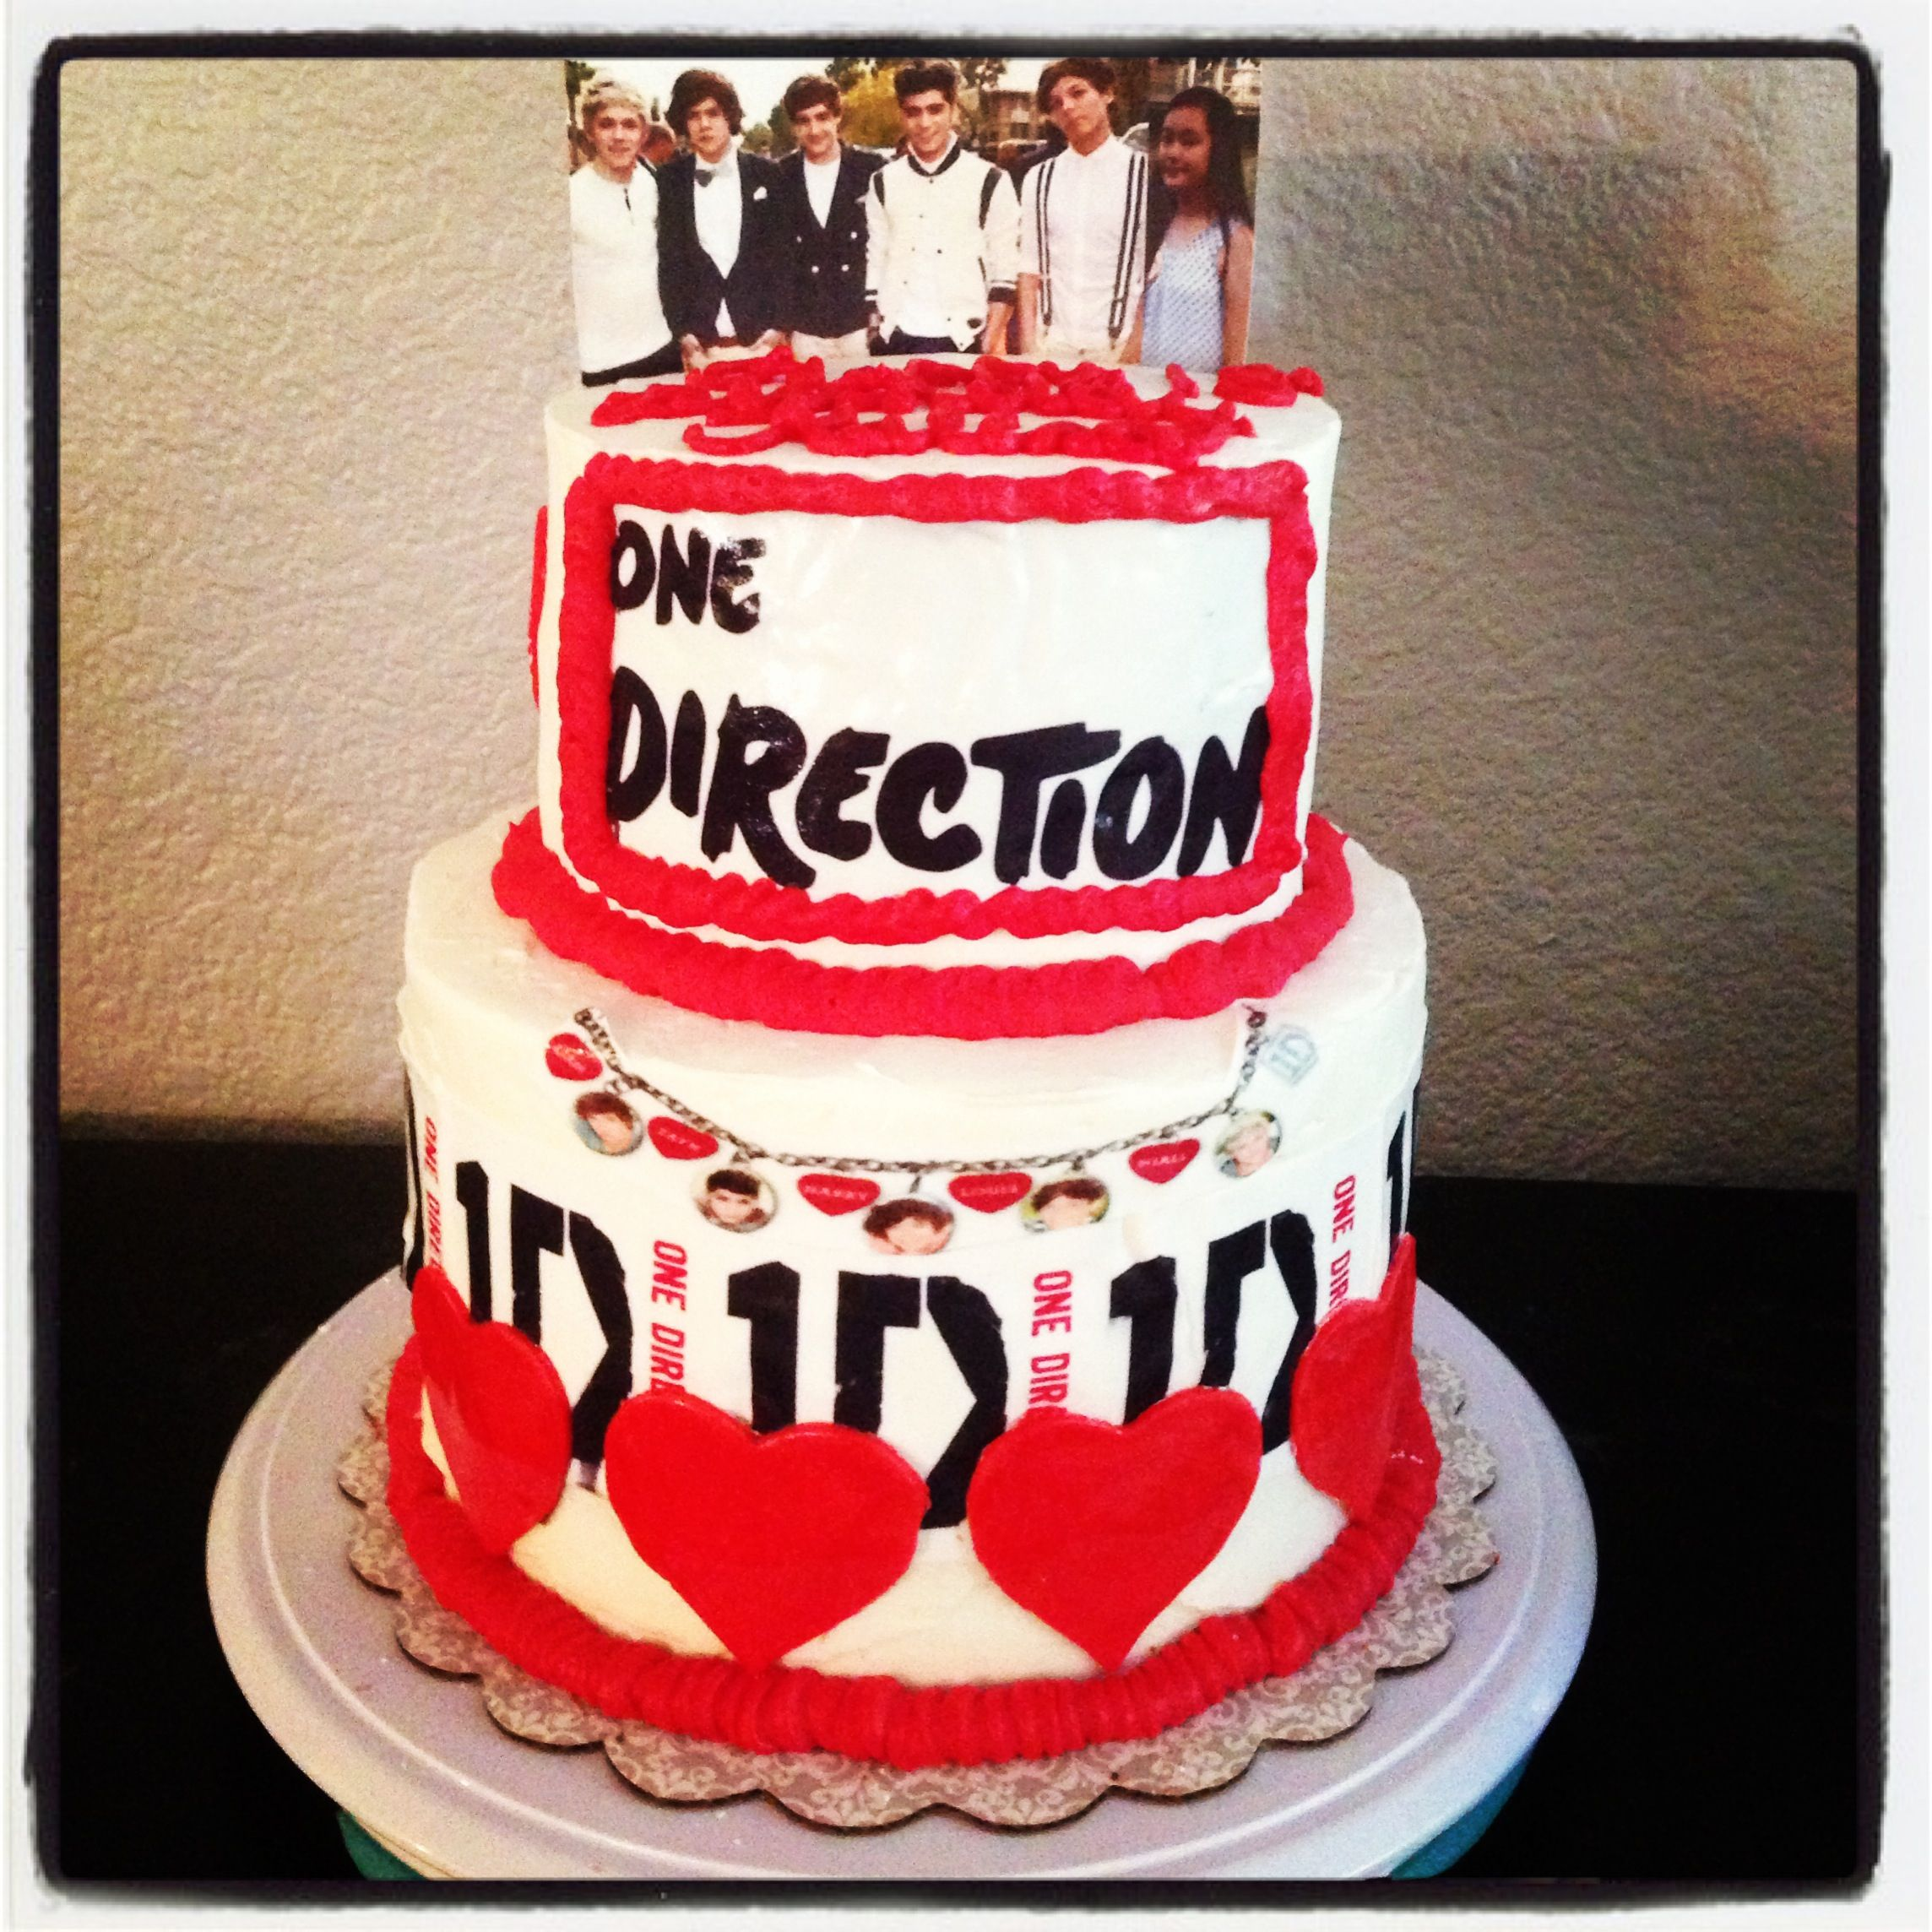 One Direction Cake 1d With Images One Direction Cakes Dessert